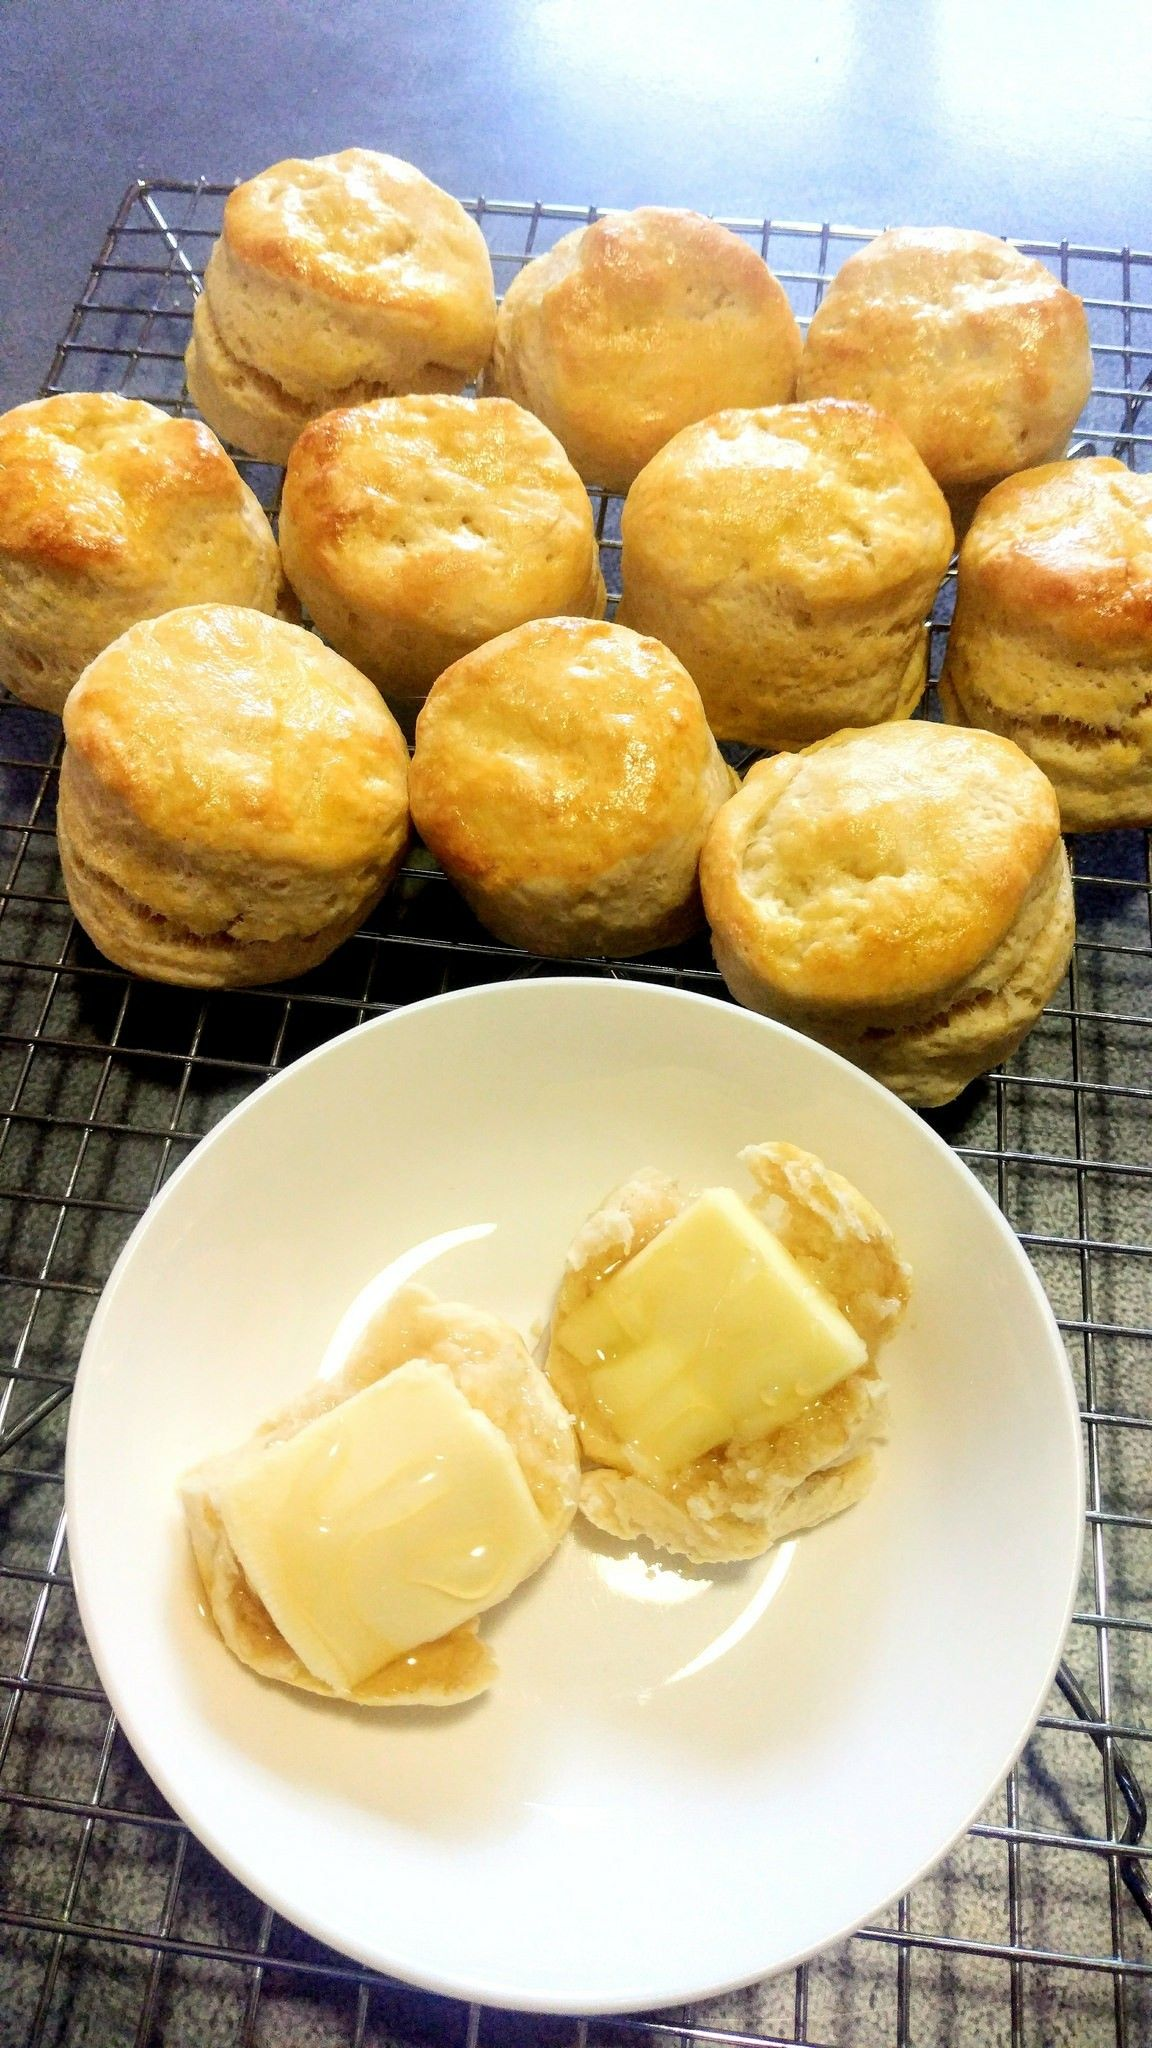 Scones Self Rising Flour Is All Purpose Flour With Baking Powder And Salt Added To Make Your Own Combine 1 Cup Of All Purpose Self Rising Flour Baking Food